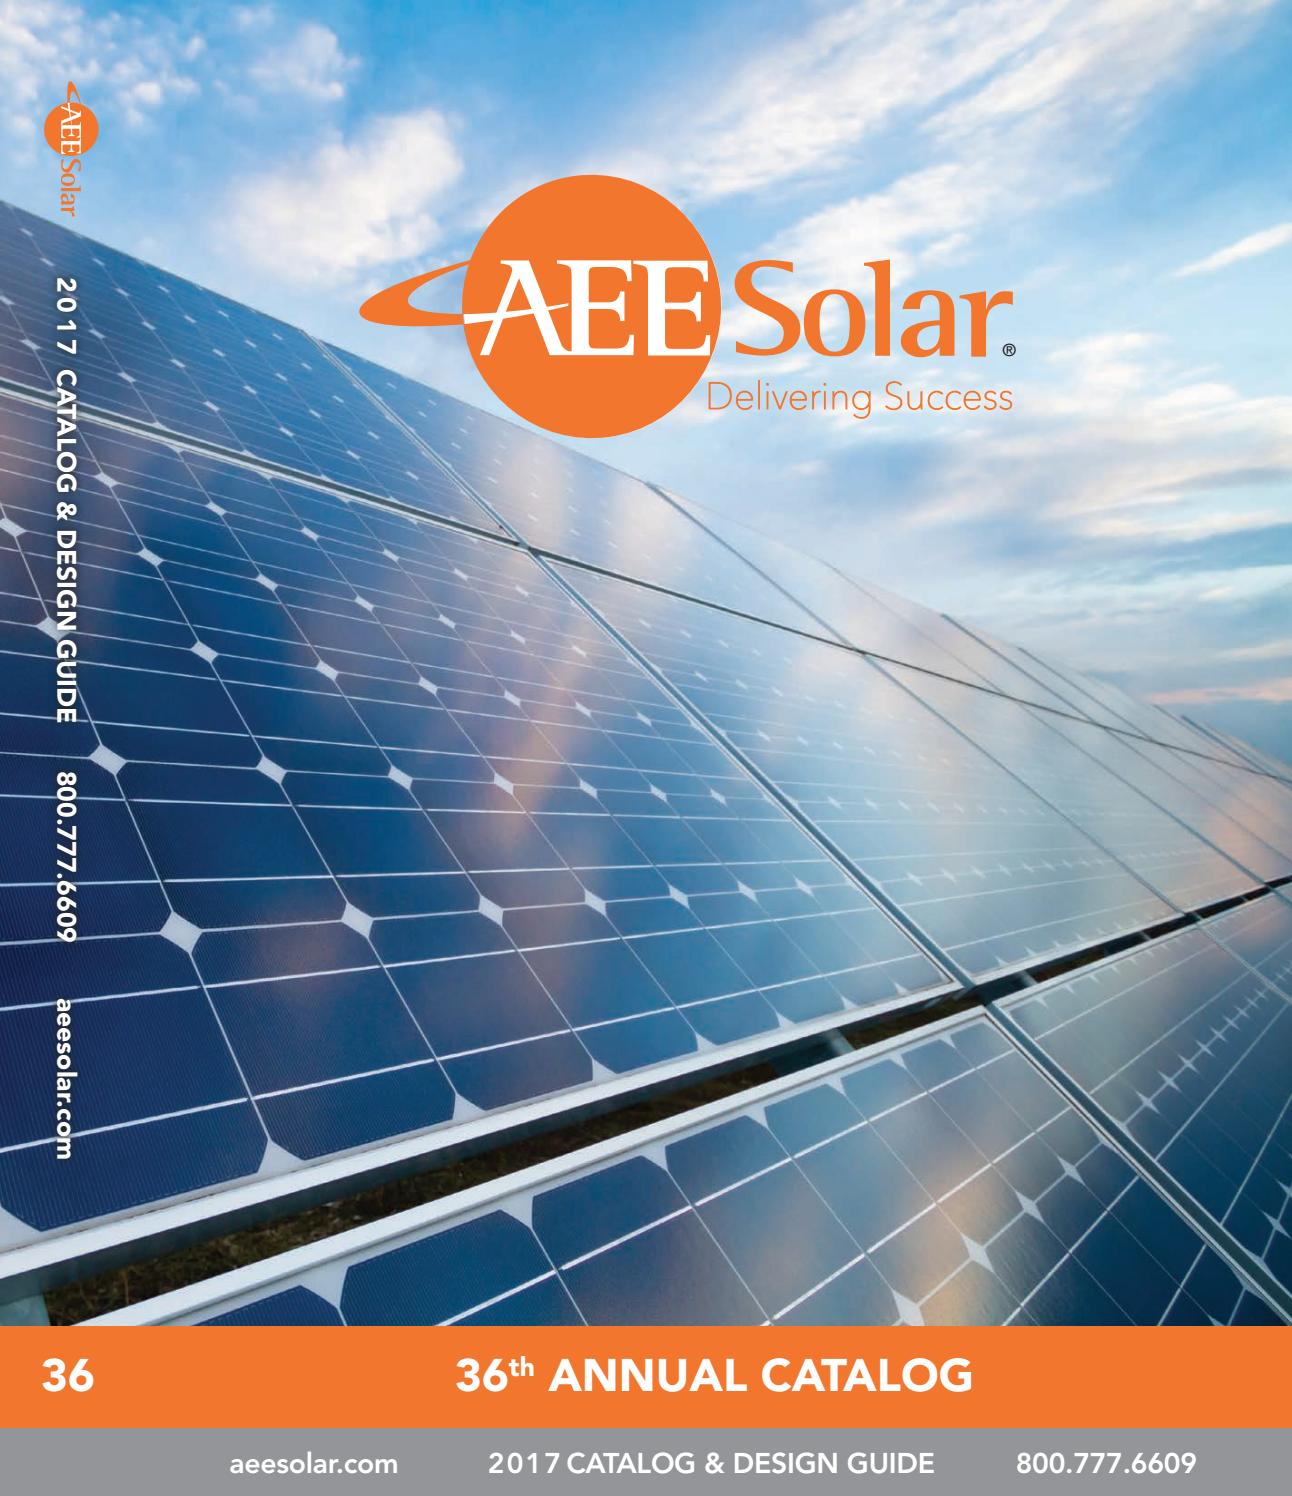 Aeesolar Catalog 2017 By Aliggett Issuu Circuit 5000 Watt Power Inverter Schematic Grid Tie Micro Gel